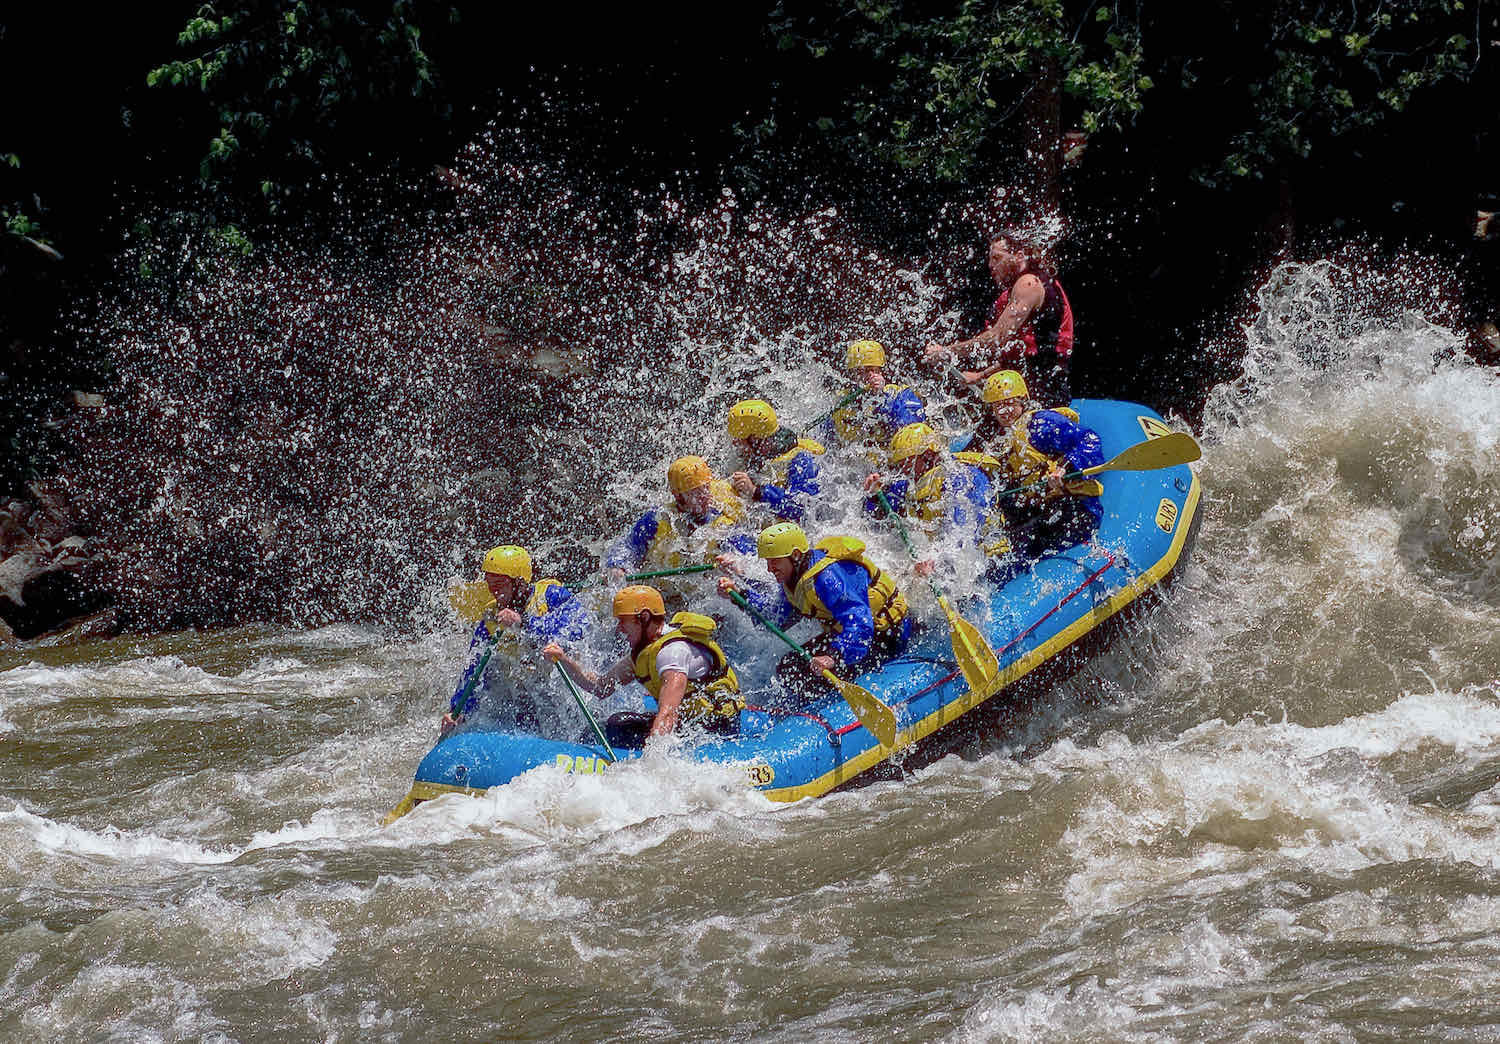 A blue river raft filled with people splashes through rapids on the New River.